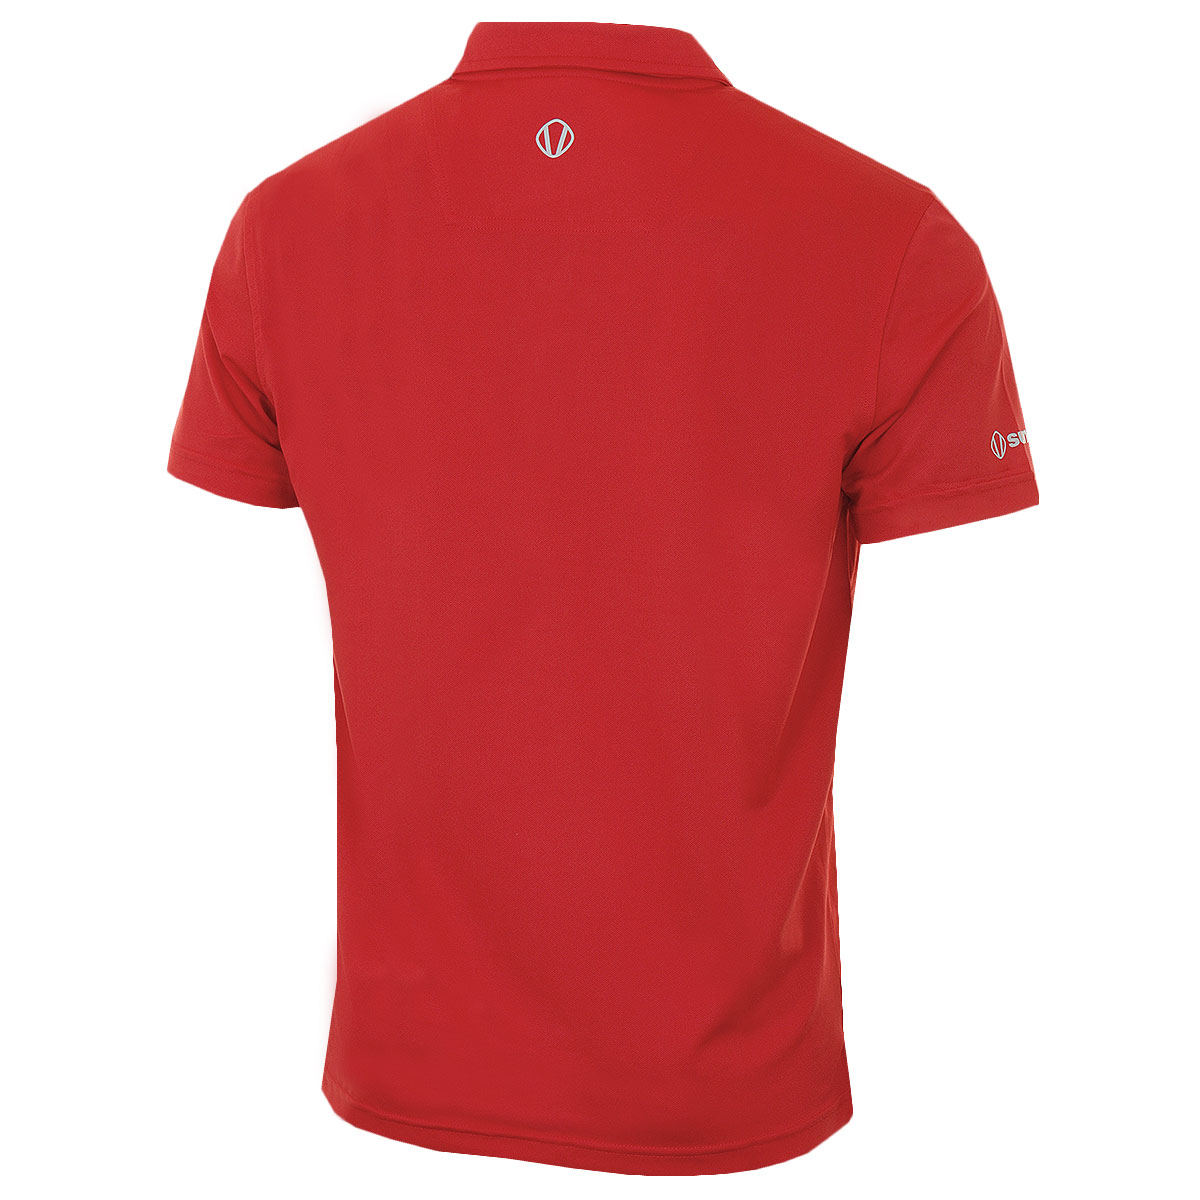 Sunice-Mens-Golf-Rouen-SS-Core-Stretch-Moisture-Wicking-Polo-Shirt-74-OFF-RRP thumbnail 7